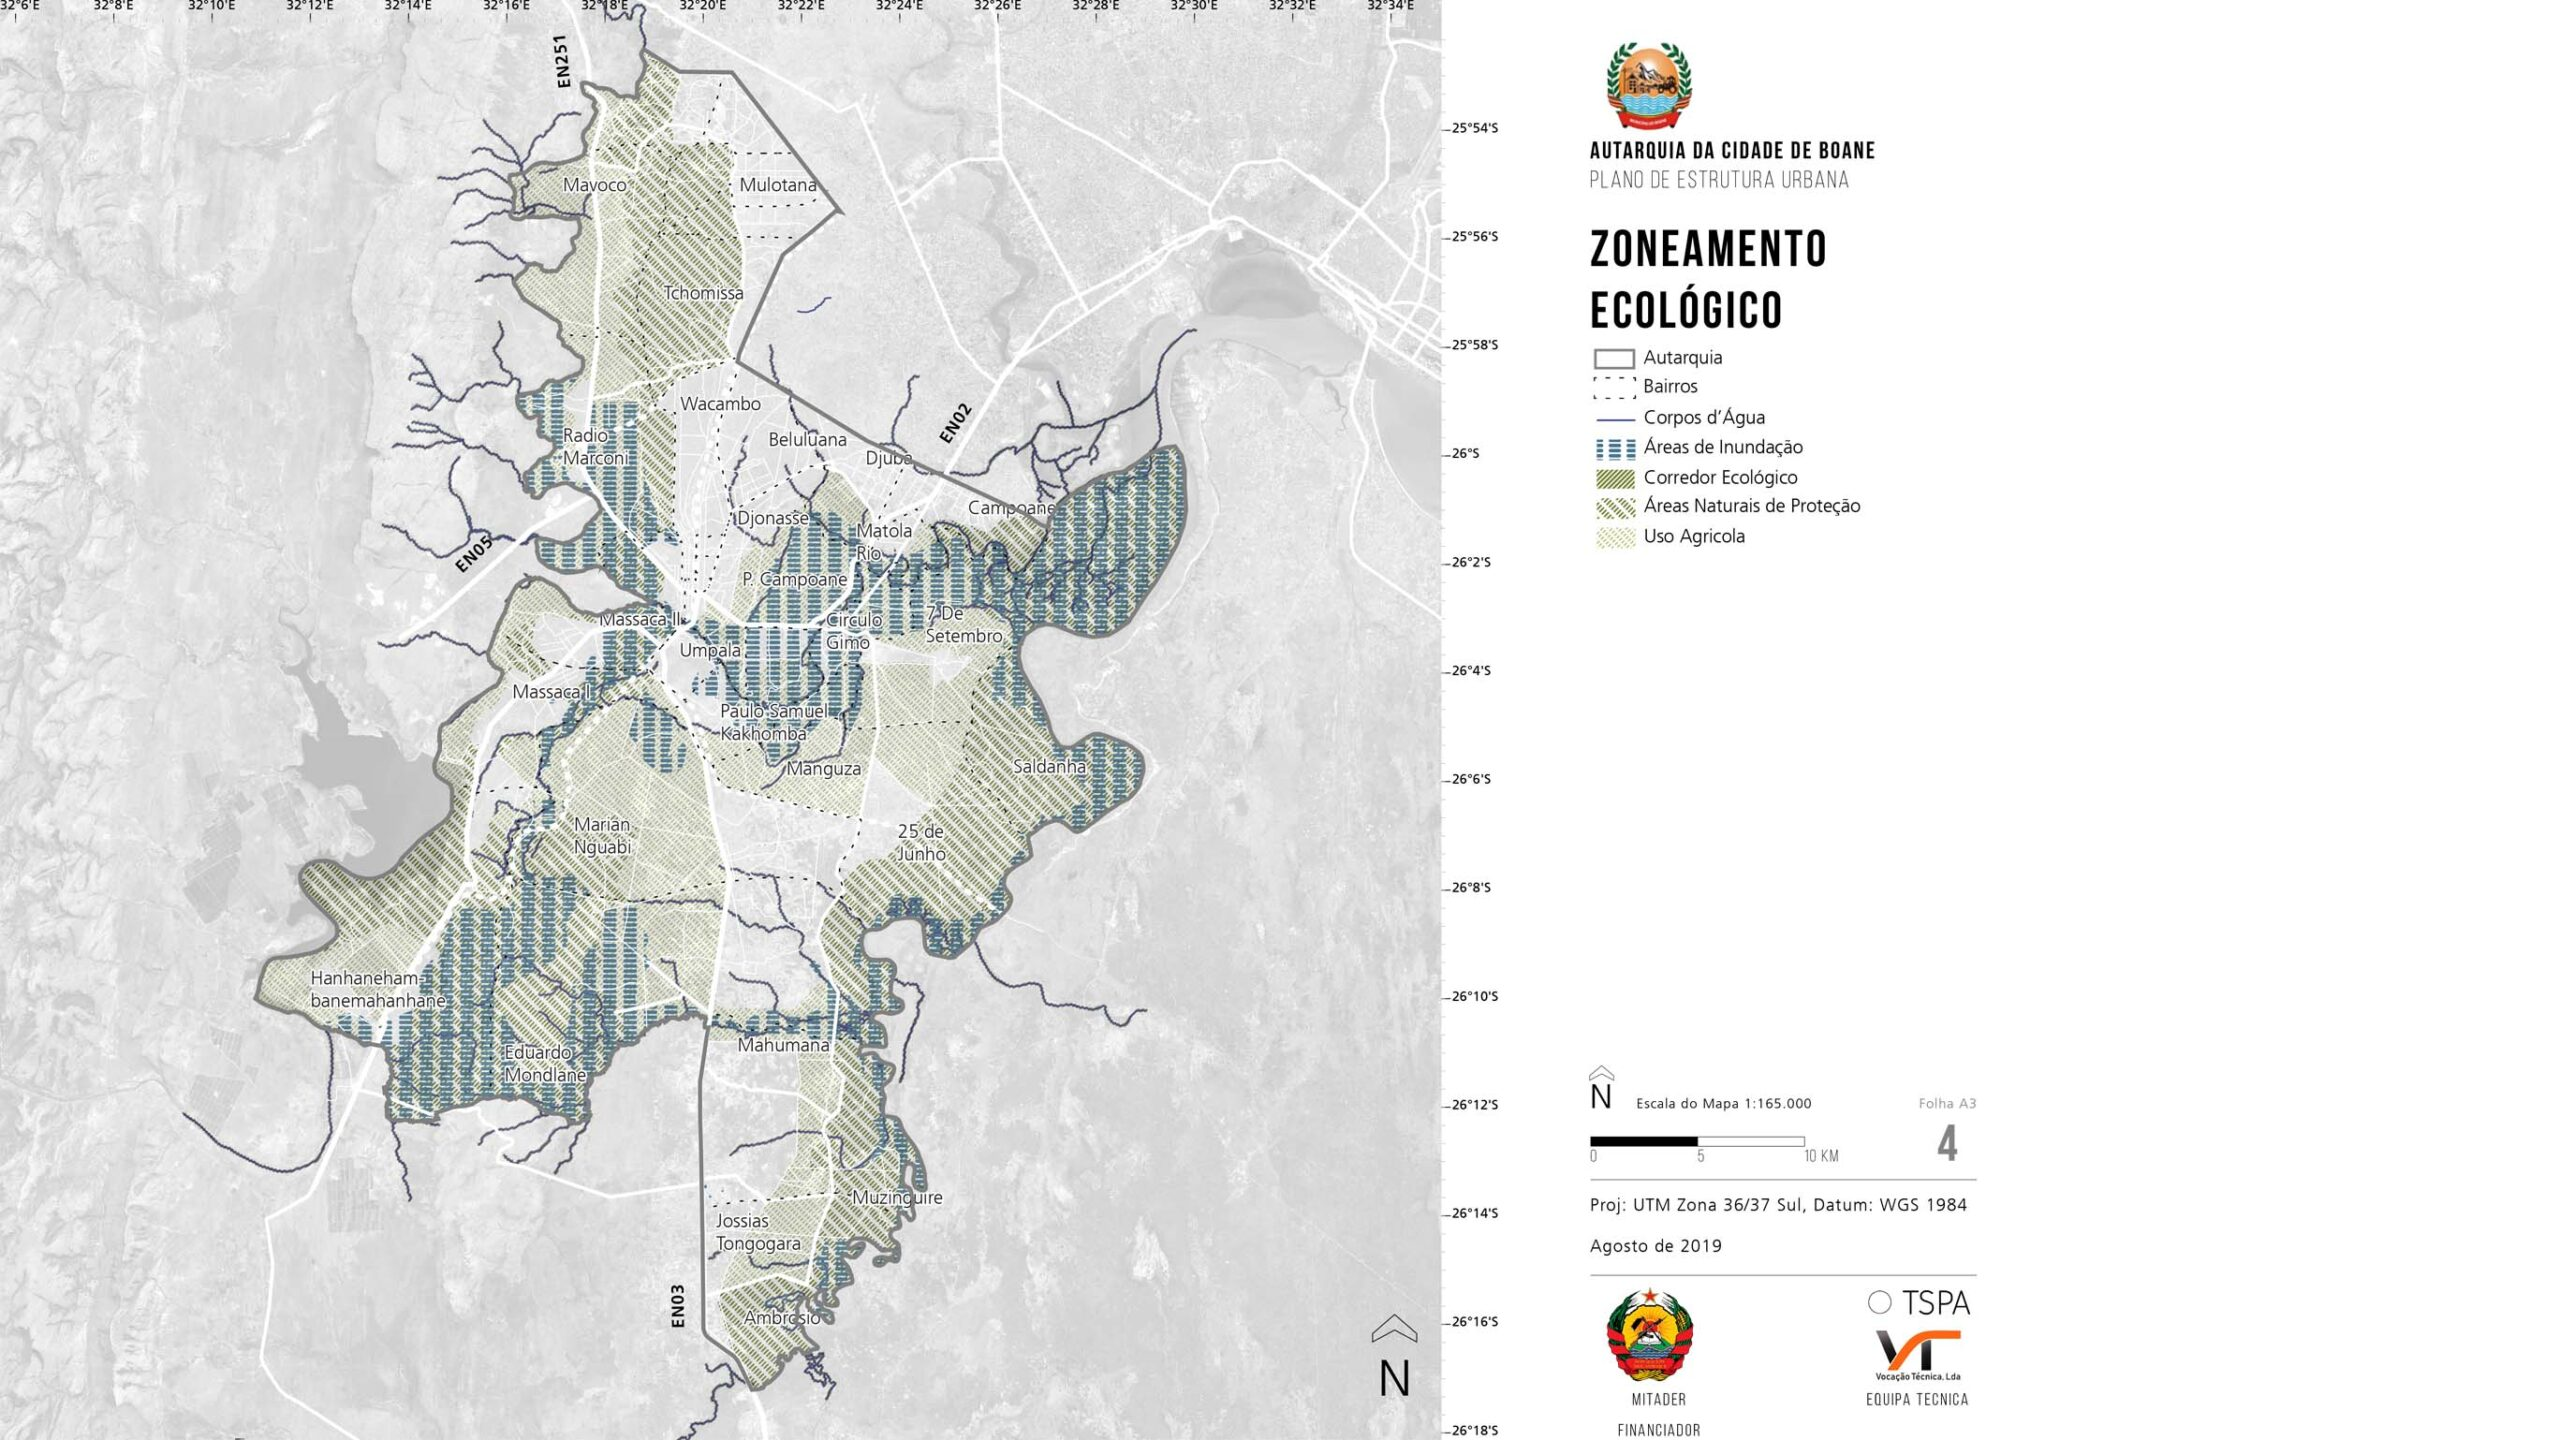 Structural Urban Plans in five cities of Mozambique